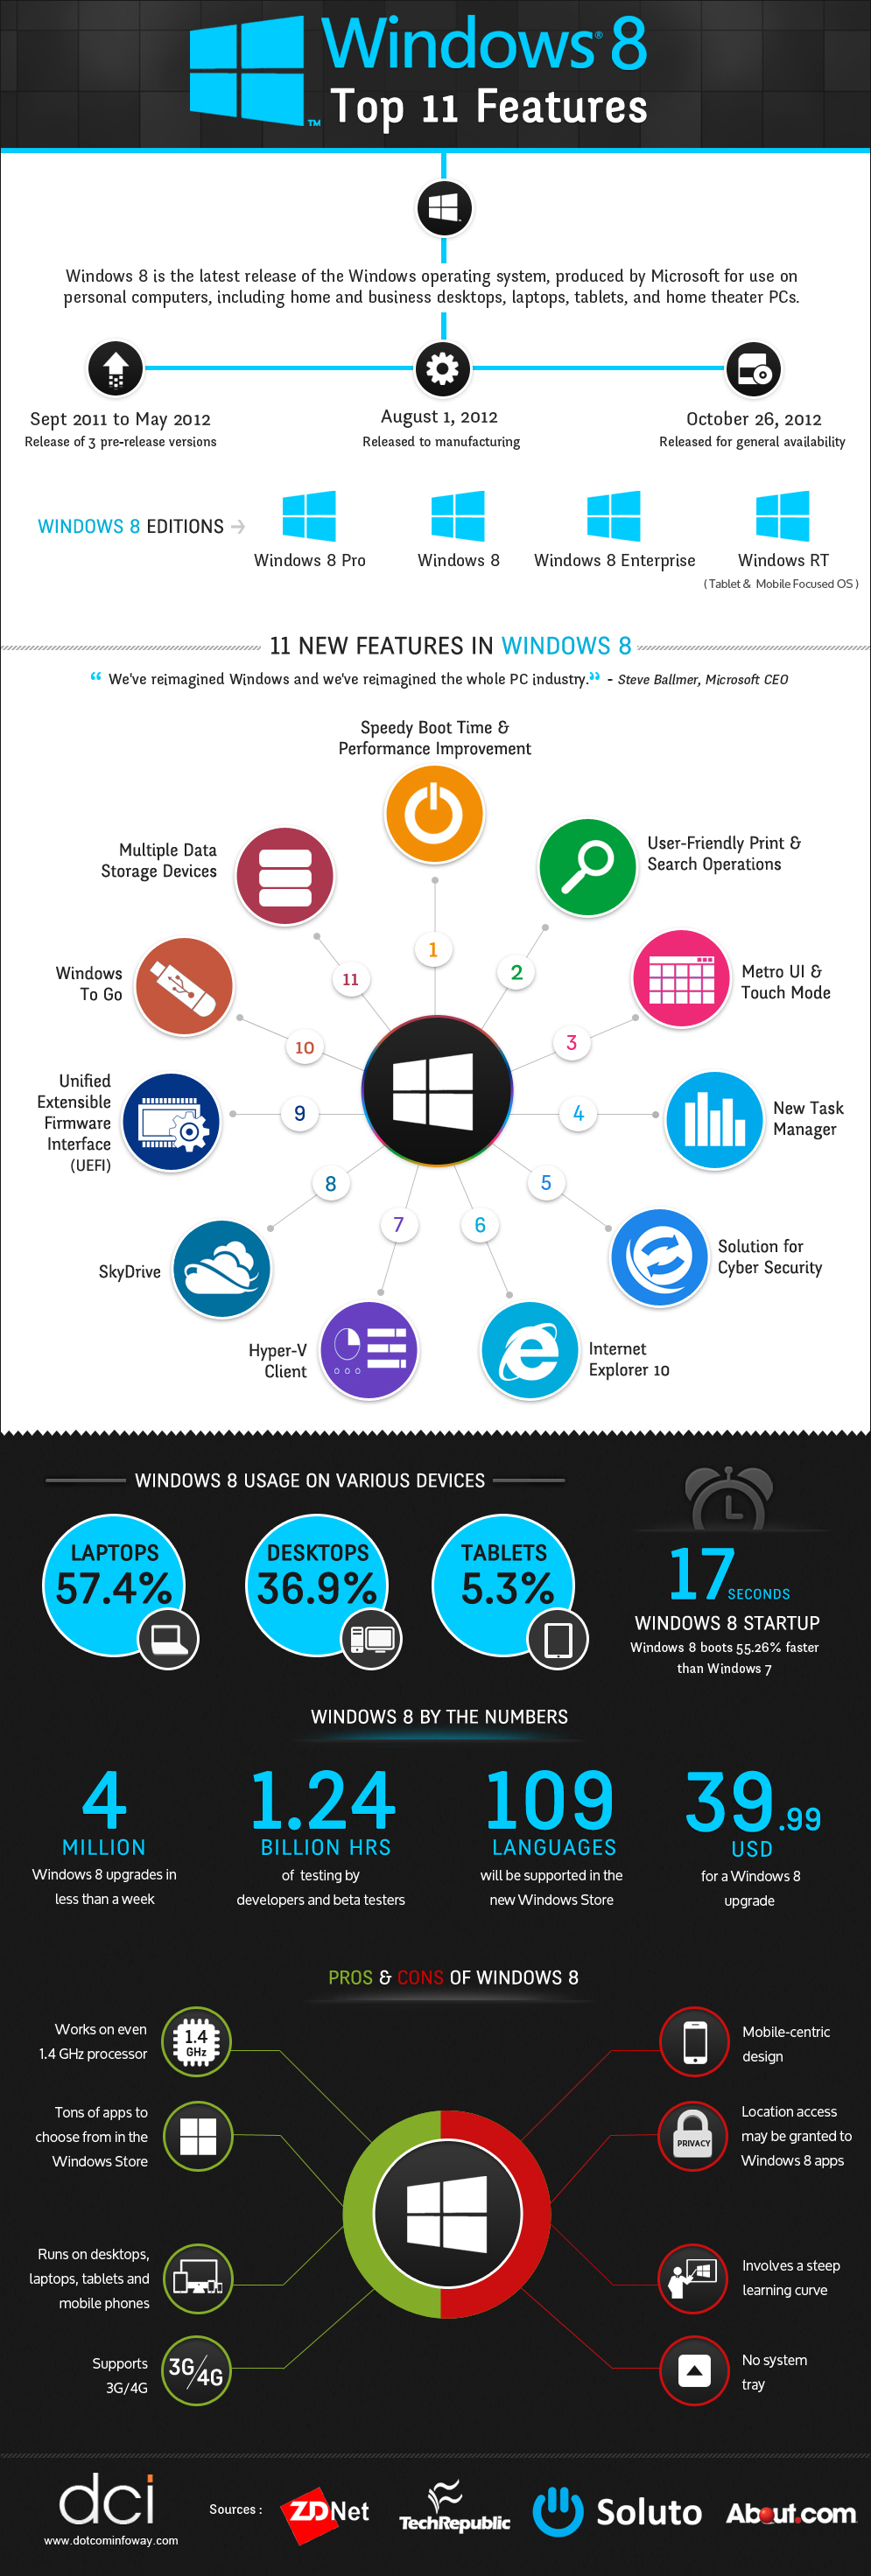 Exciting Awesome Features Of Windows 8 By A Infographic Image